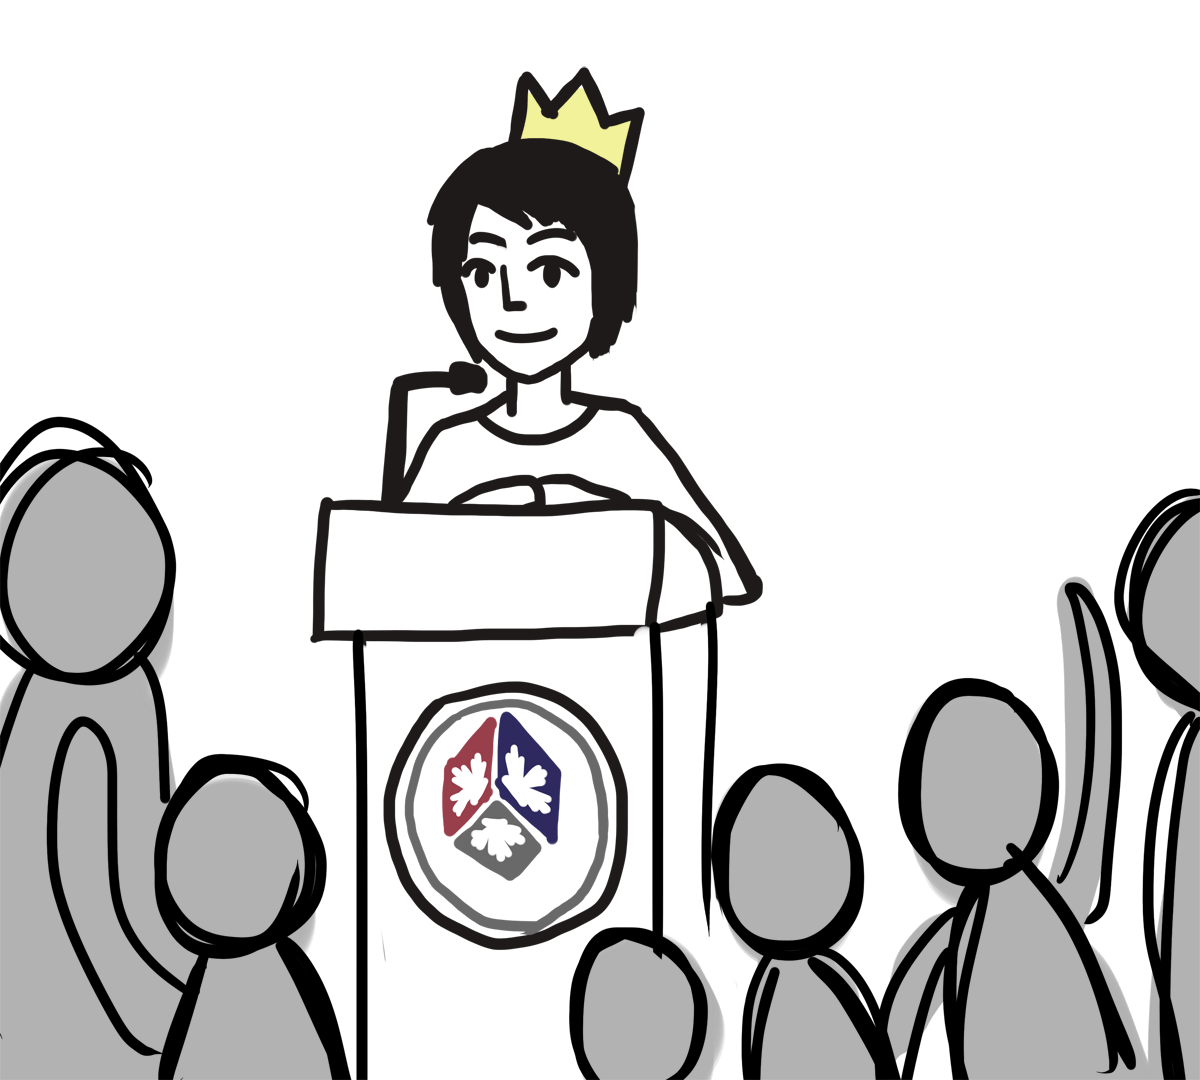 MGCI's Annual Popularity Contest